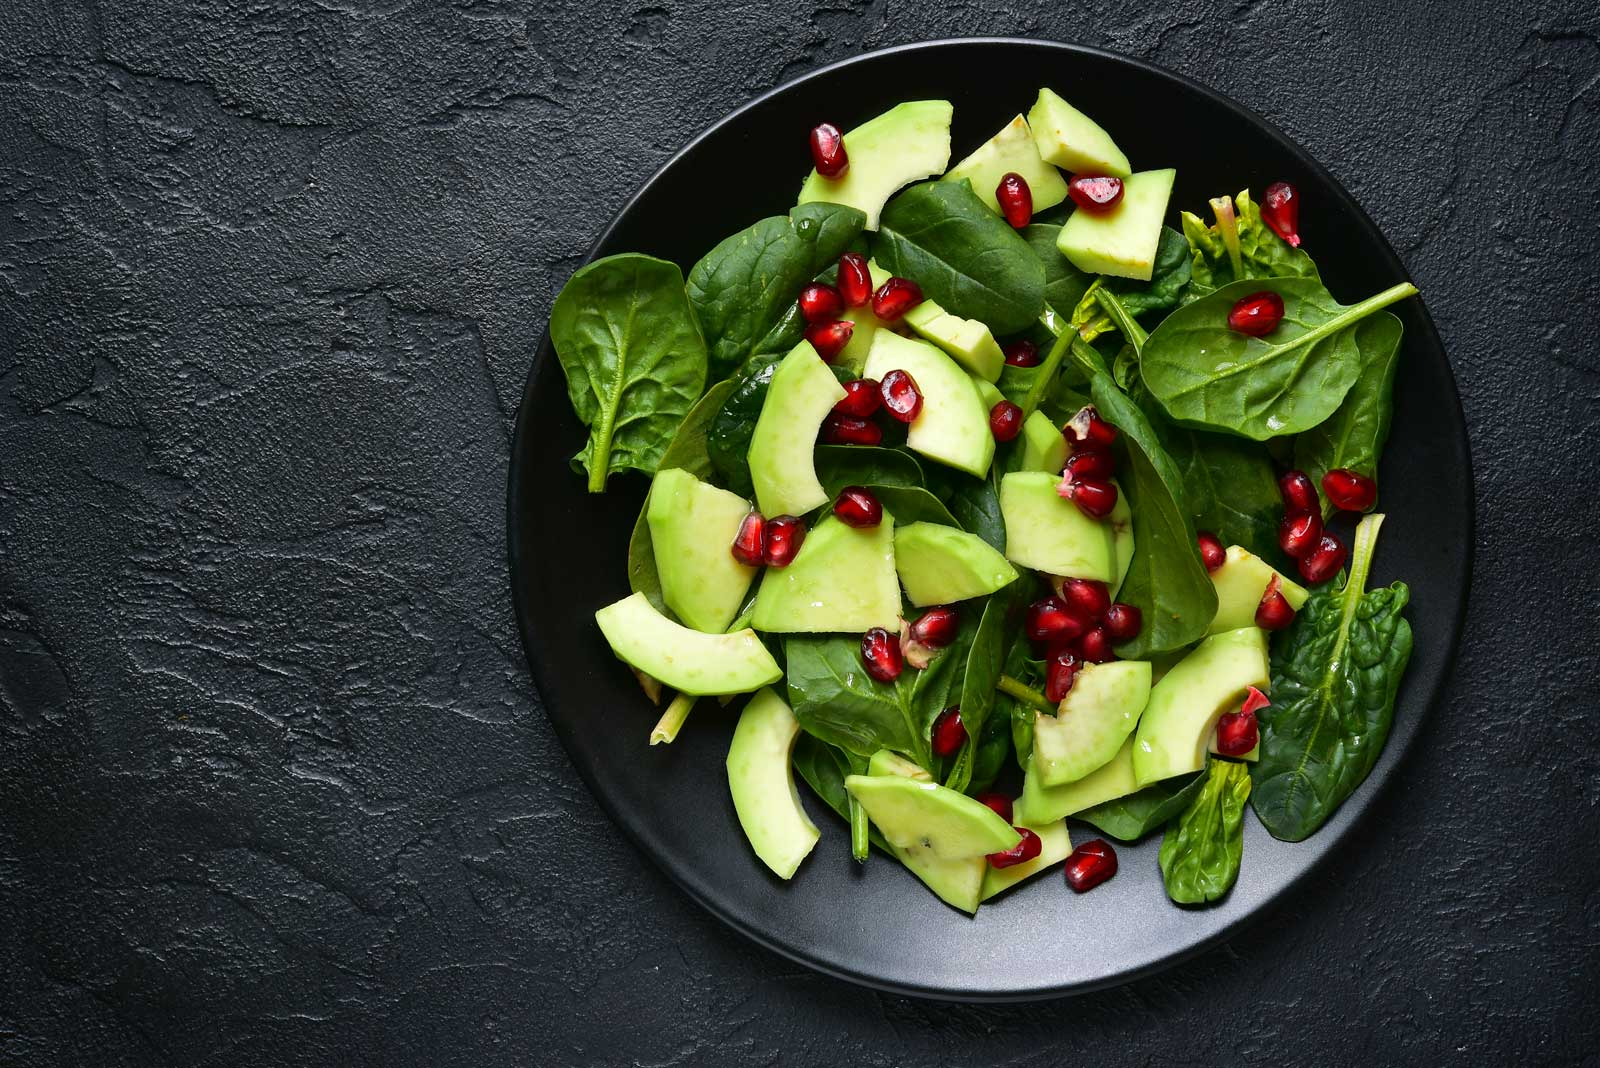 Pomegranate Seed Salad with Chopped Cucumbers and Spinach